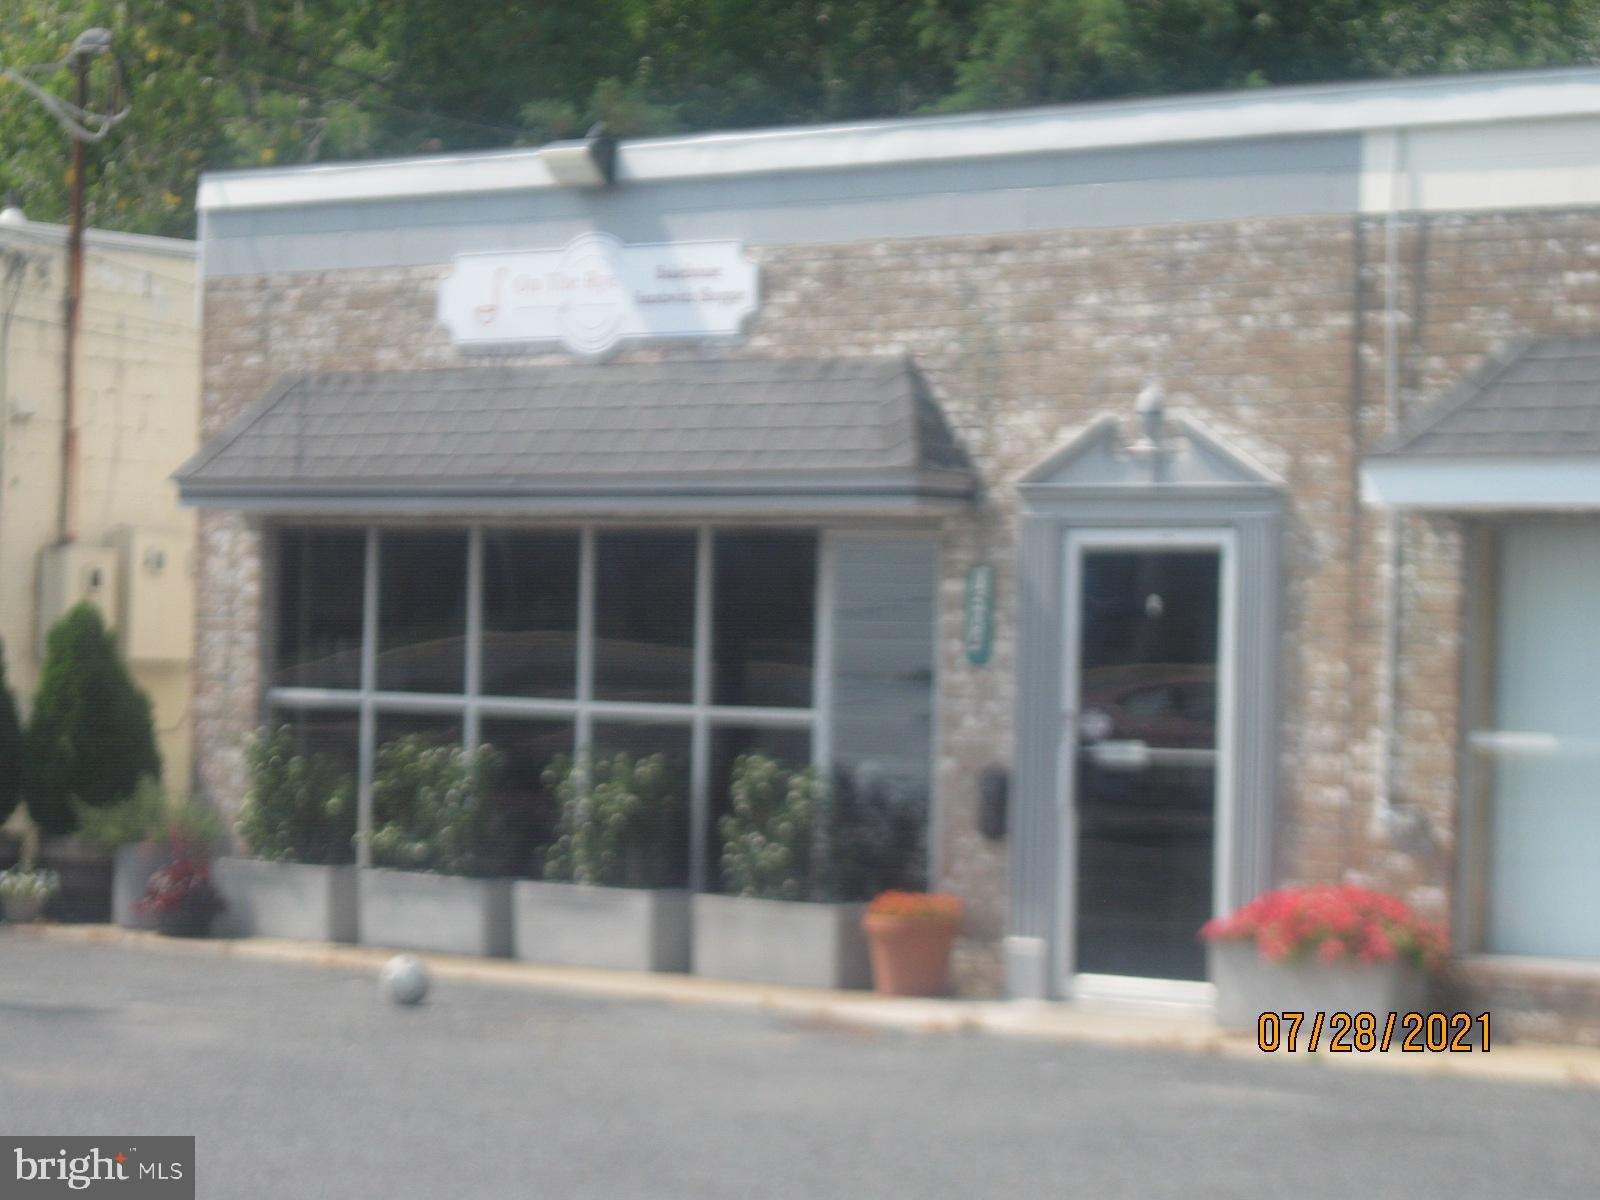 40+ seat operating restaurant.  Great opportunity for turn key operator.  See included equipment list, much of it new. If you have always wanted to own your own coffee, bakery or cafe here it is. Loyal local clients and increasing tourist area make this a winning spot!